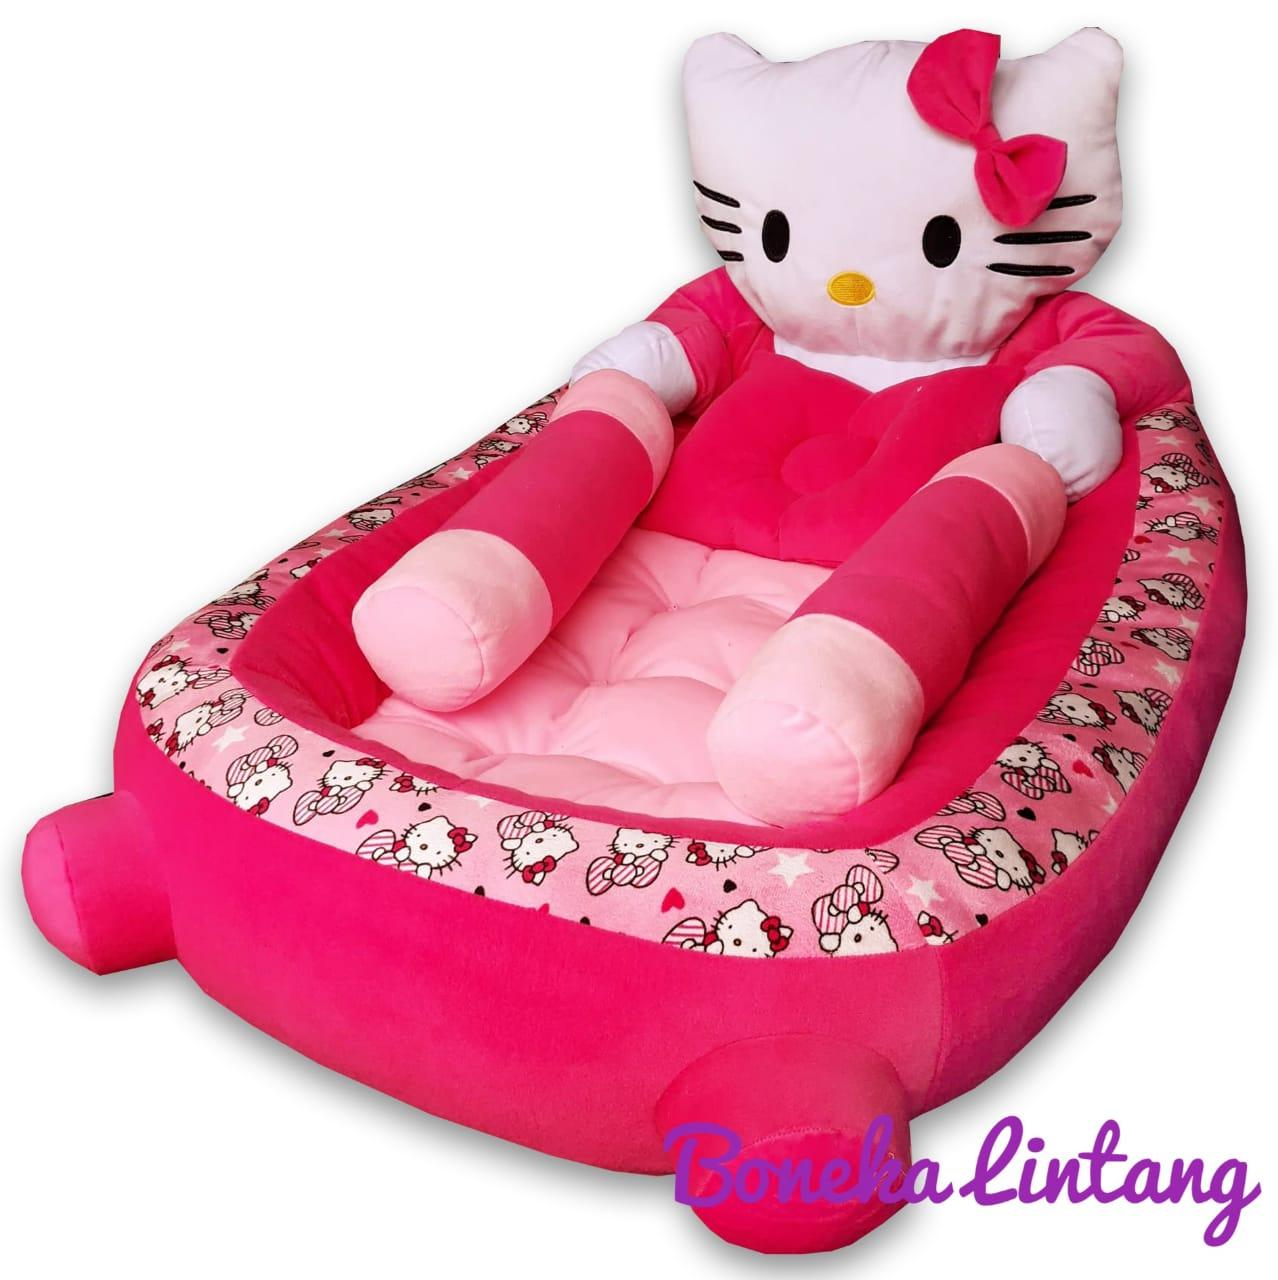 Kasur Bayi Set Bantal Guling Karakter Hello Kitty